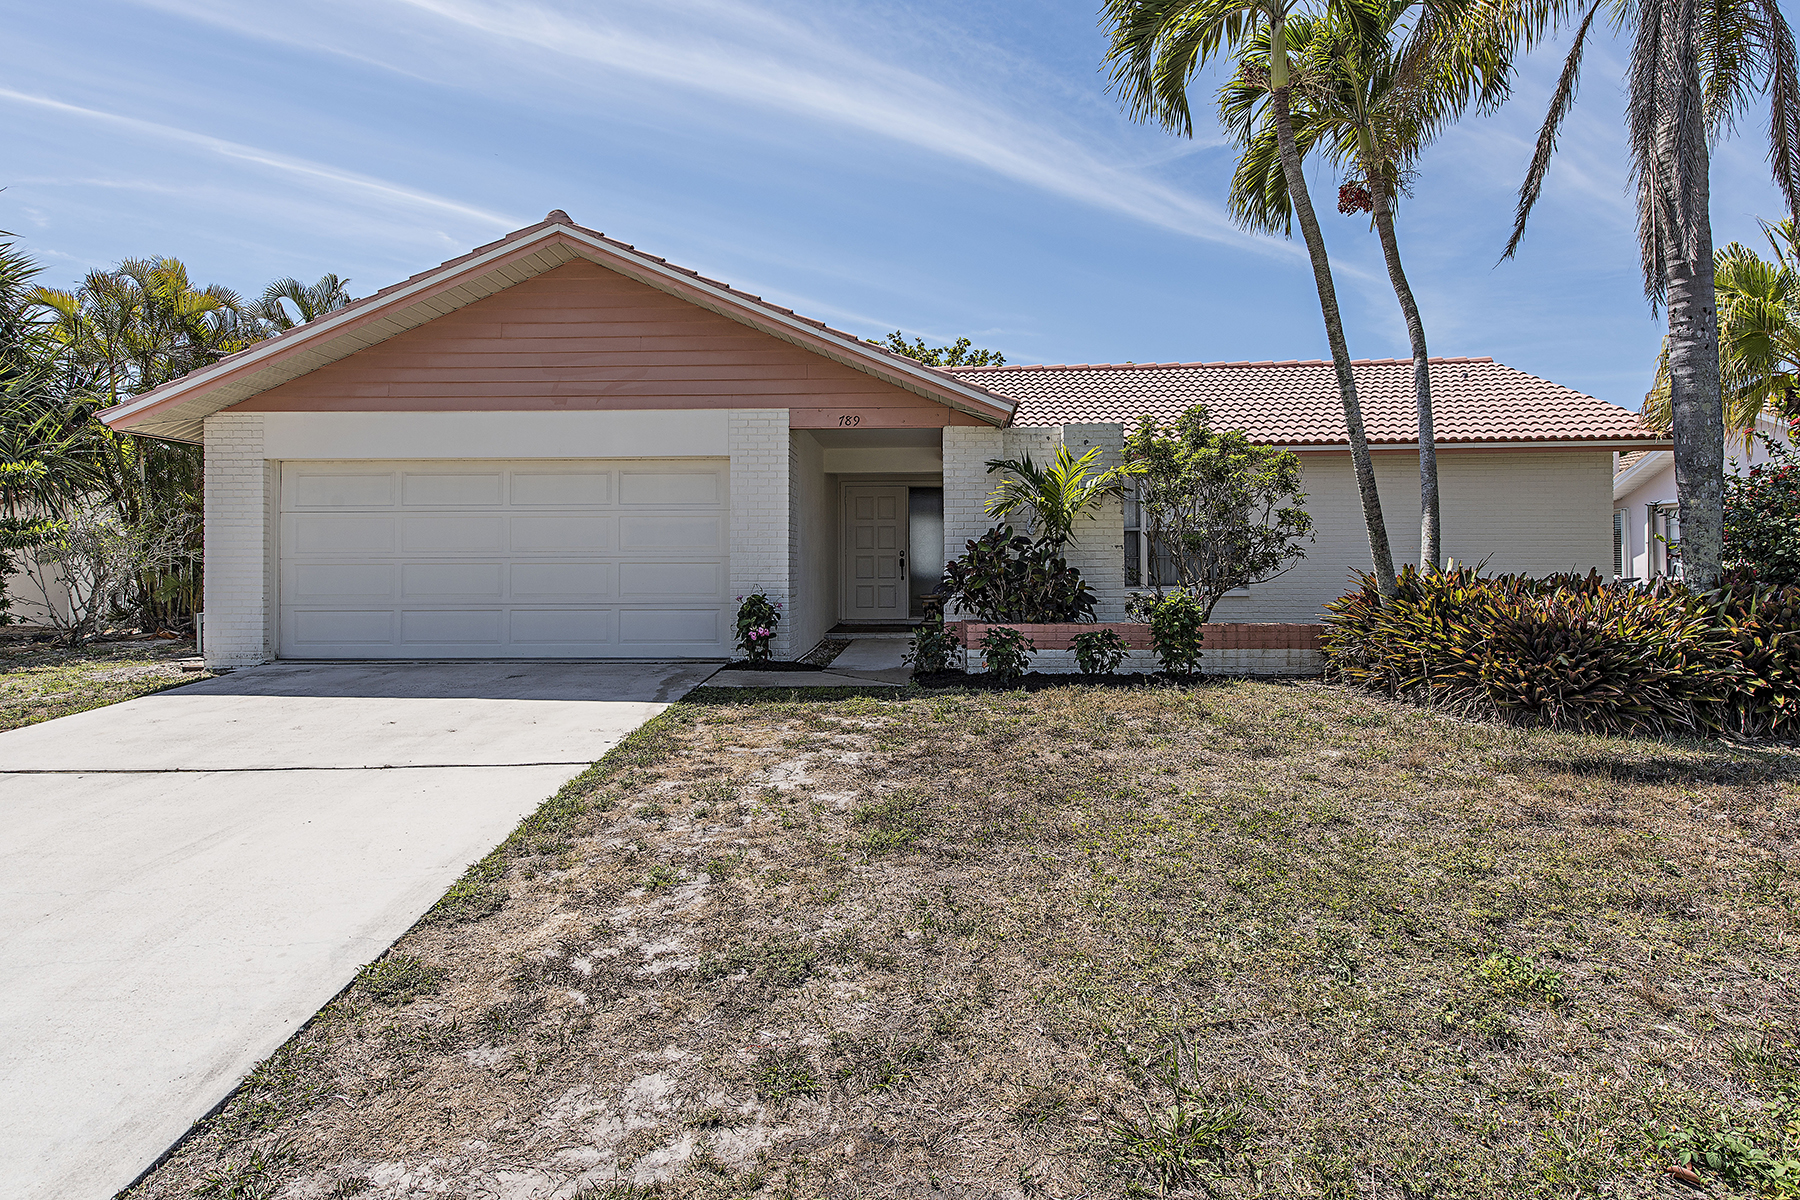 Single Family Home for Sale at MARCO ISLAND - CARIBBEAN COURT 789 Caribbean Ct Marco Island, Florida, 34145 United States